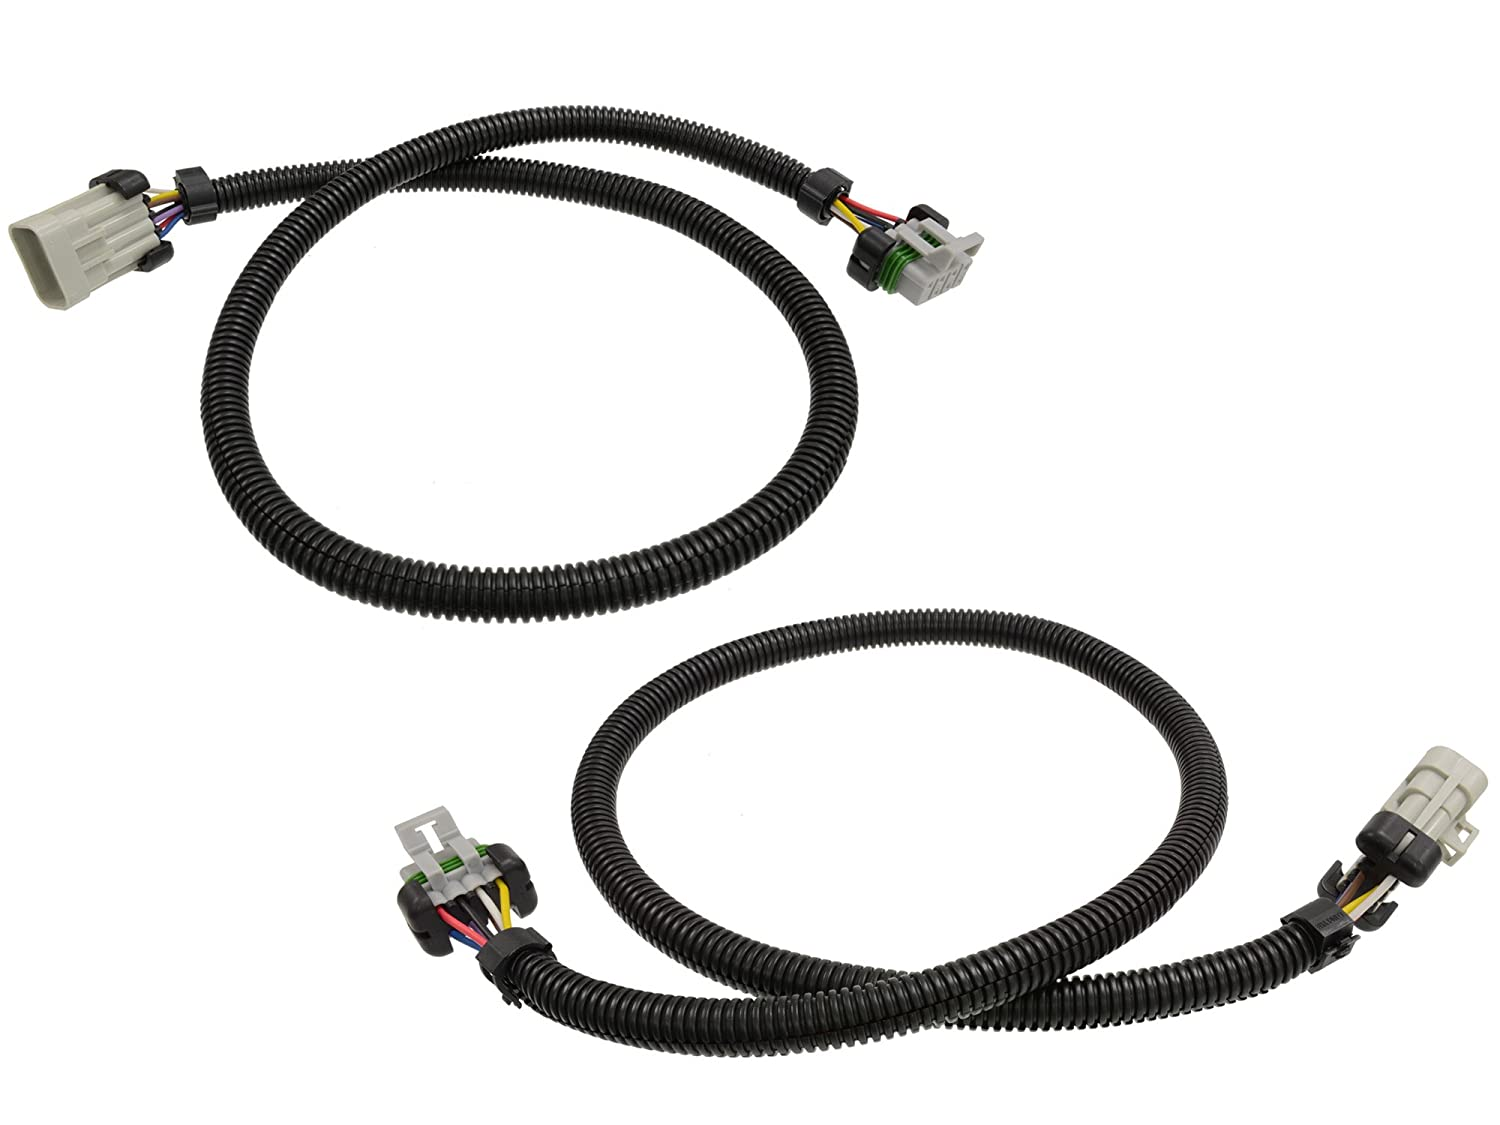 Gm Ls9 Coil Wiring Library Ls1 Harness Amazoncom Michigan Motorsports Extension Relocation 36 Fits Ls2 Ls3